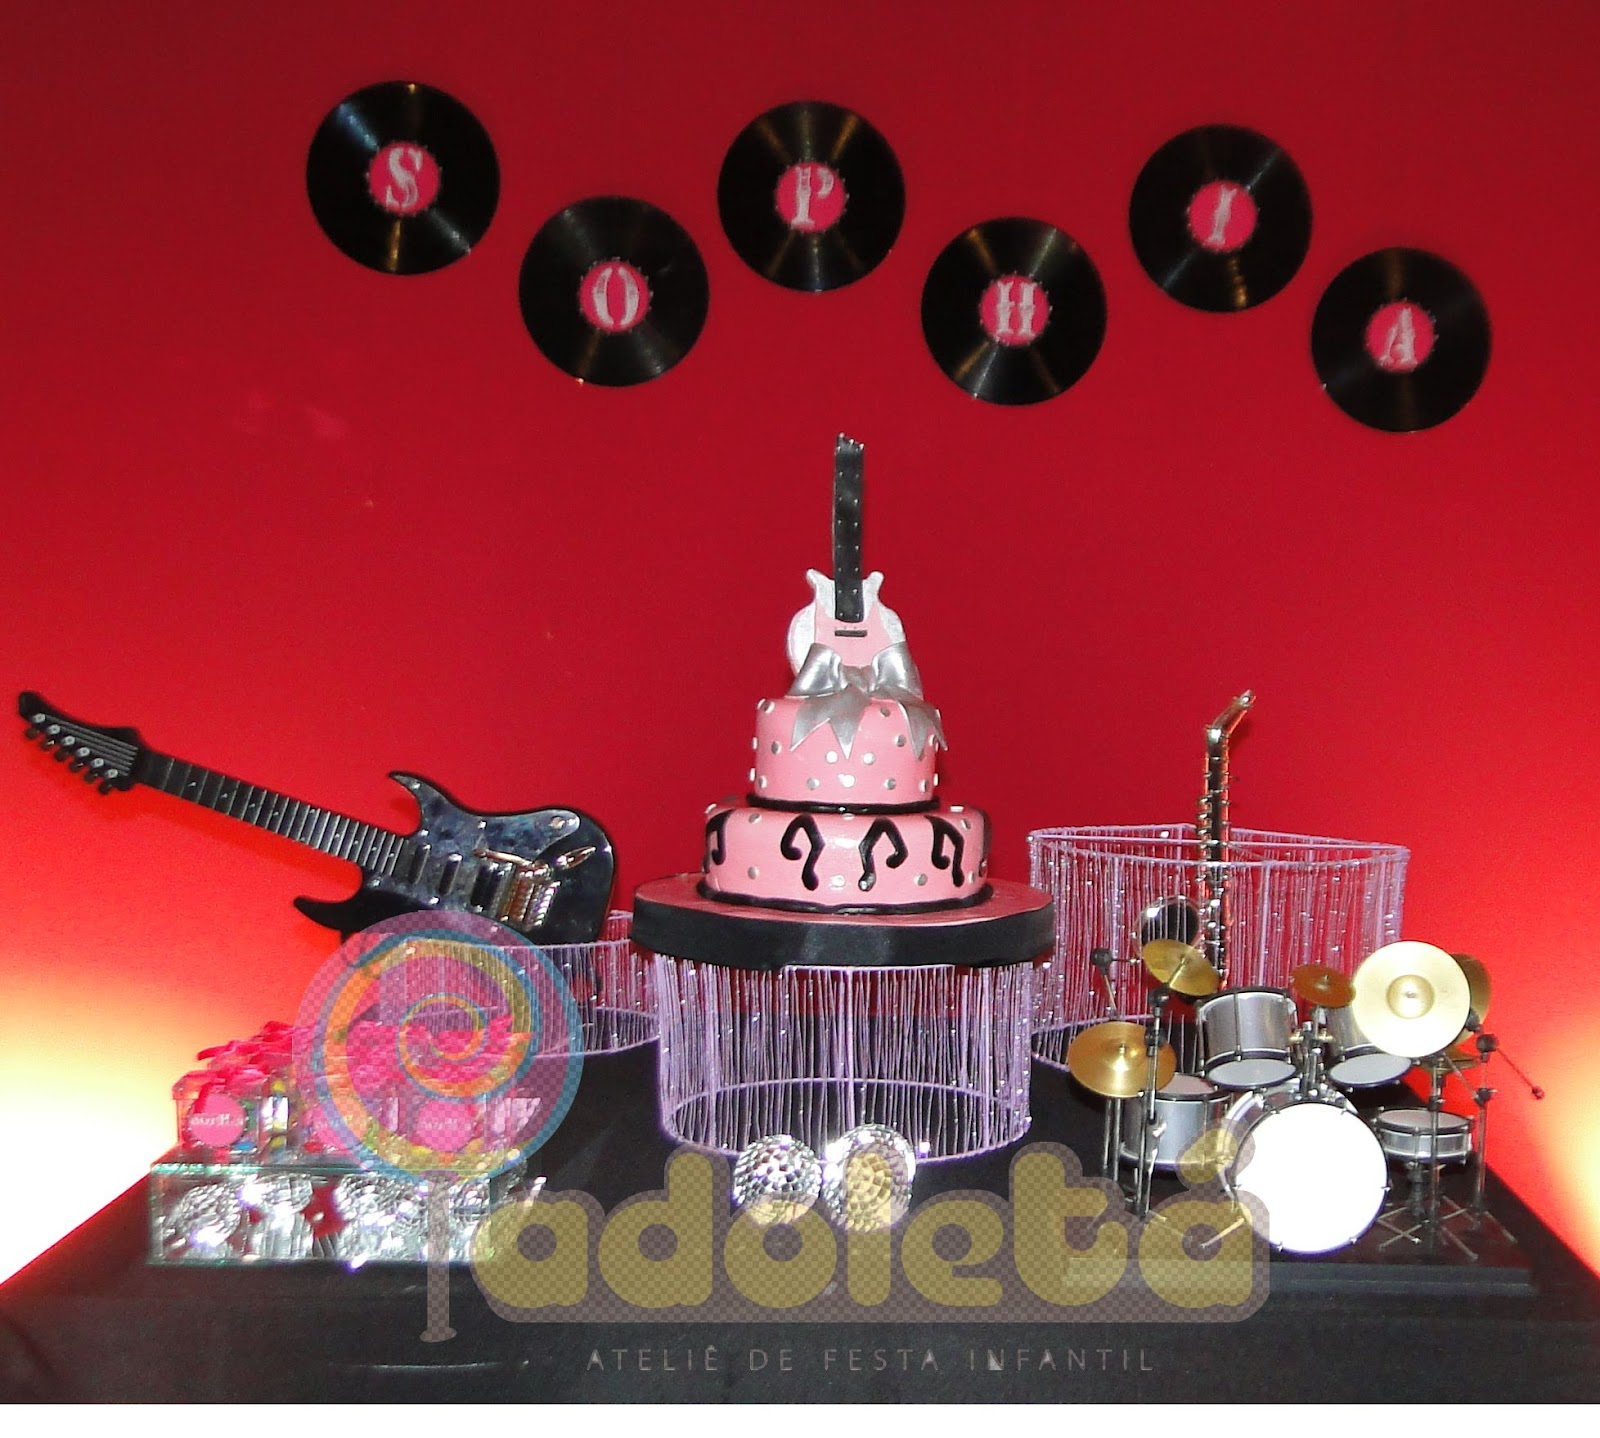 Rock N Roll Interieur Festa Infantil Rock N Roll Car Interior Design